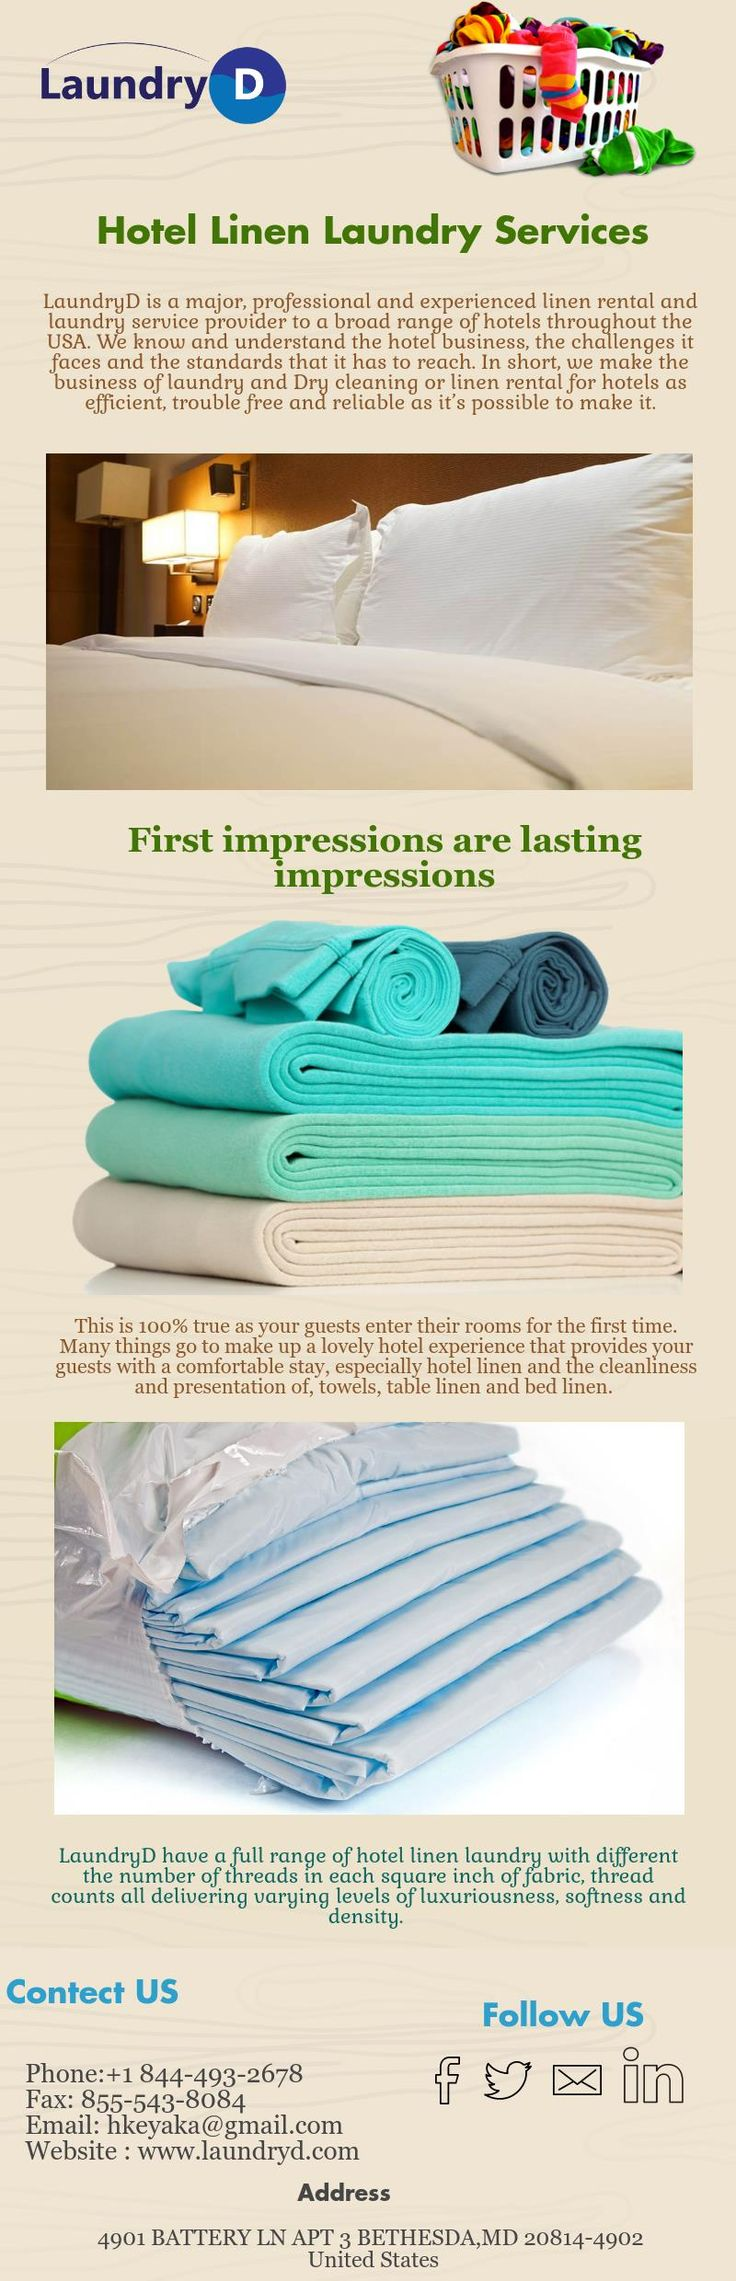 Laundryd have a full range of hotel linen laundry with different the number of threads in